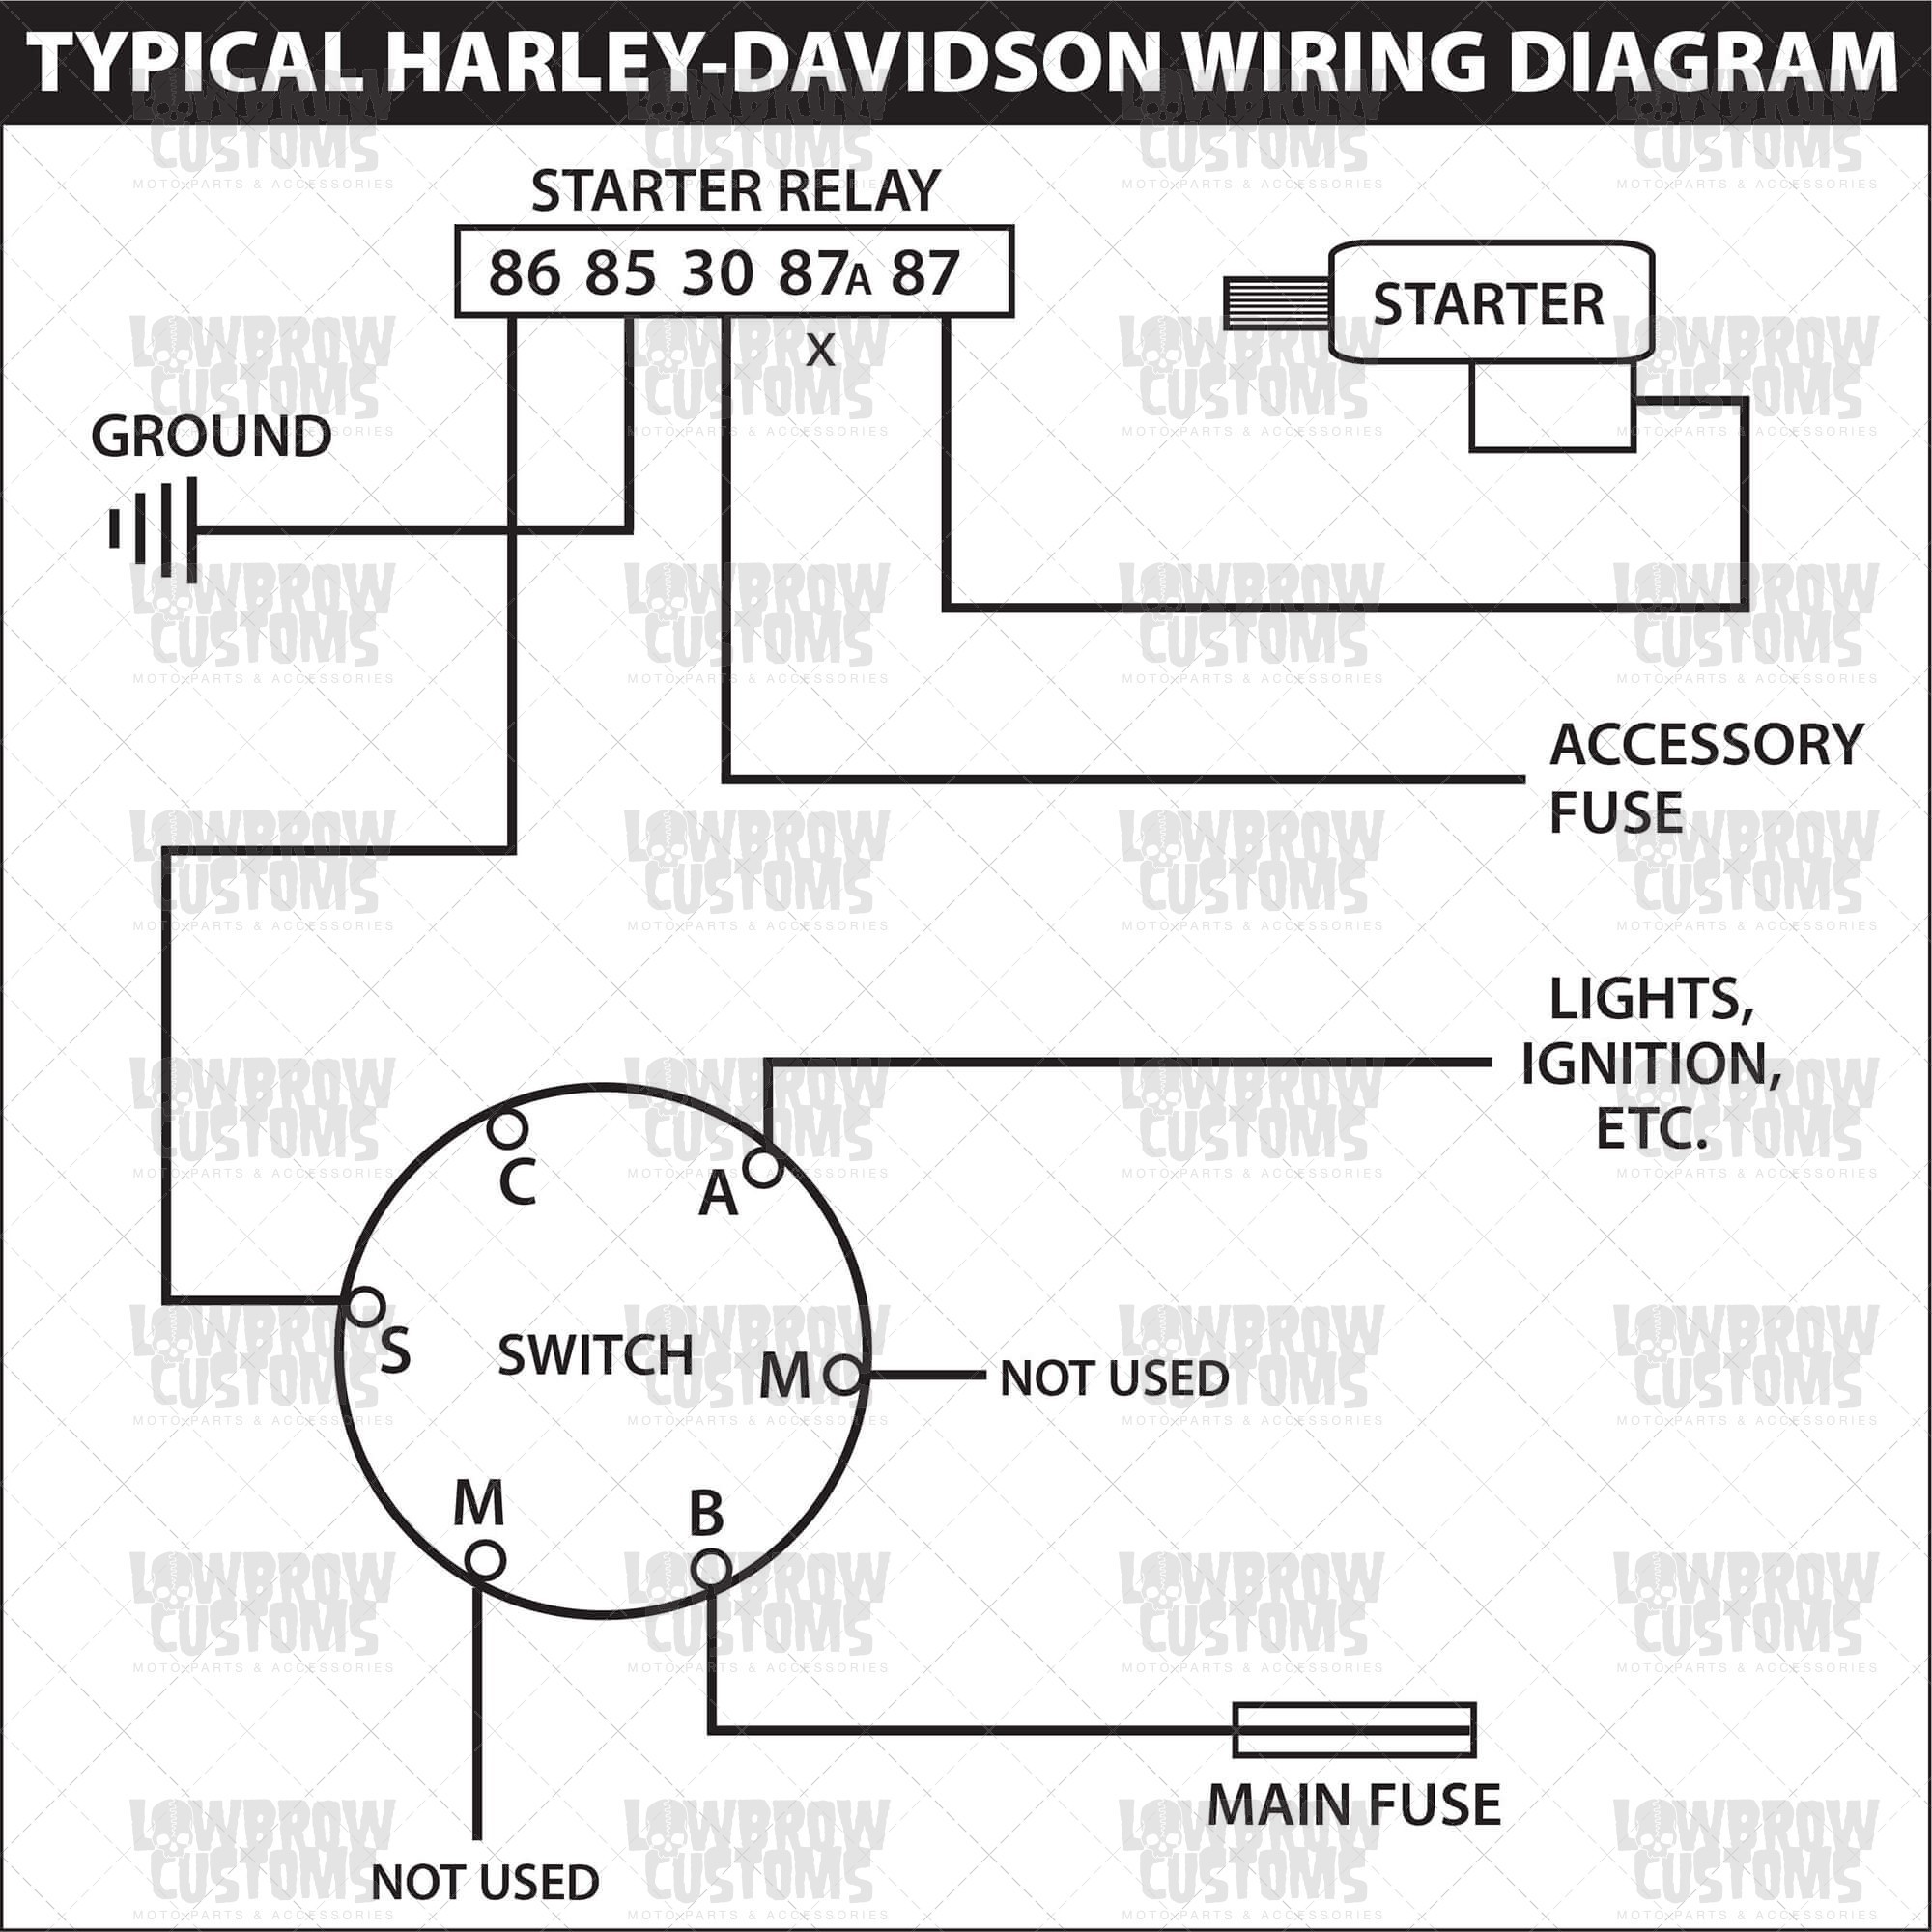 Small Engine Ignition Switch Wiring Diagram Fresh Harley Davidson Ignition Switch Wiring Diagram Diagram Of Small Engine Ignition Switch Wiring Diagram